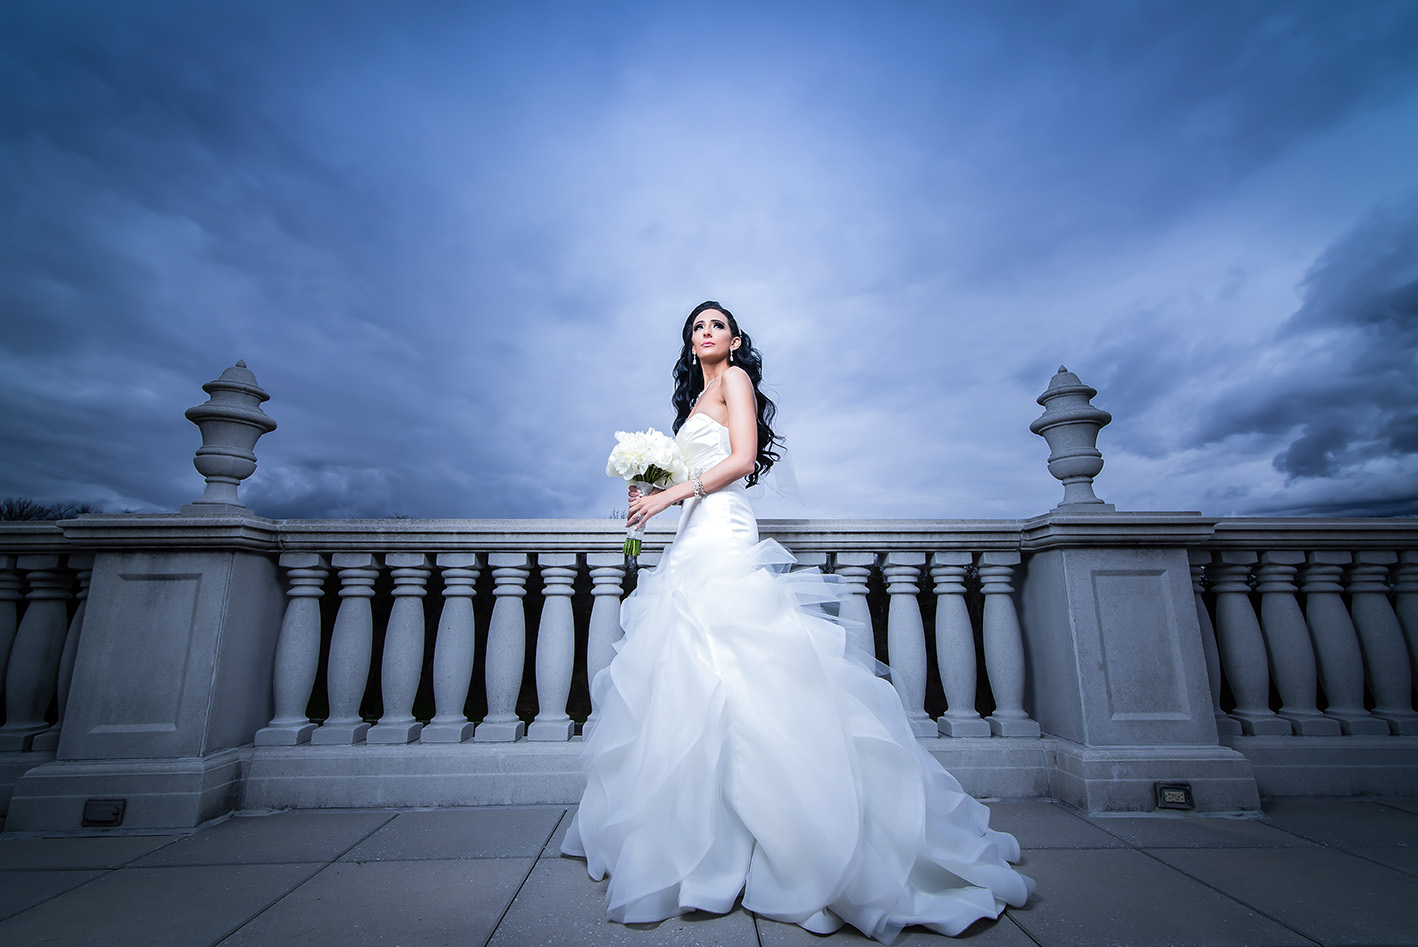 wedding_photography_dhoom_studio_new_york79 Wedding